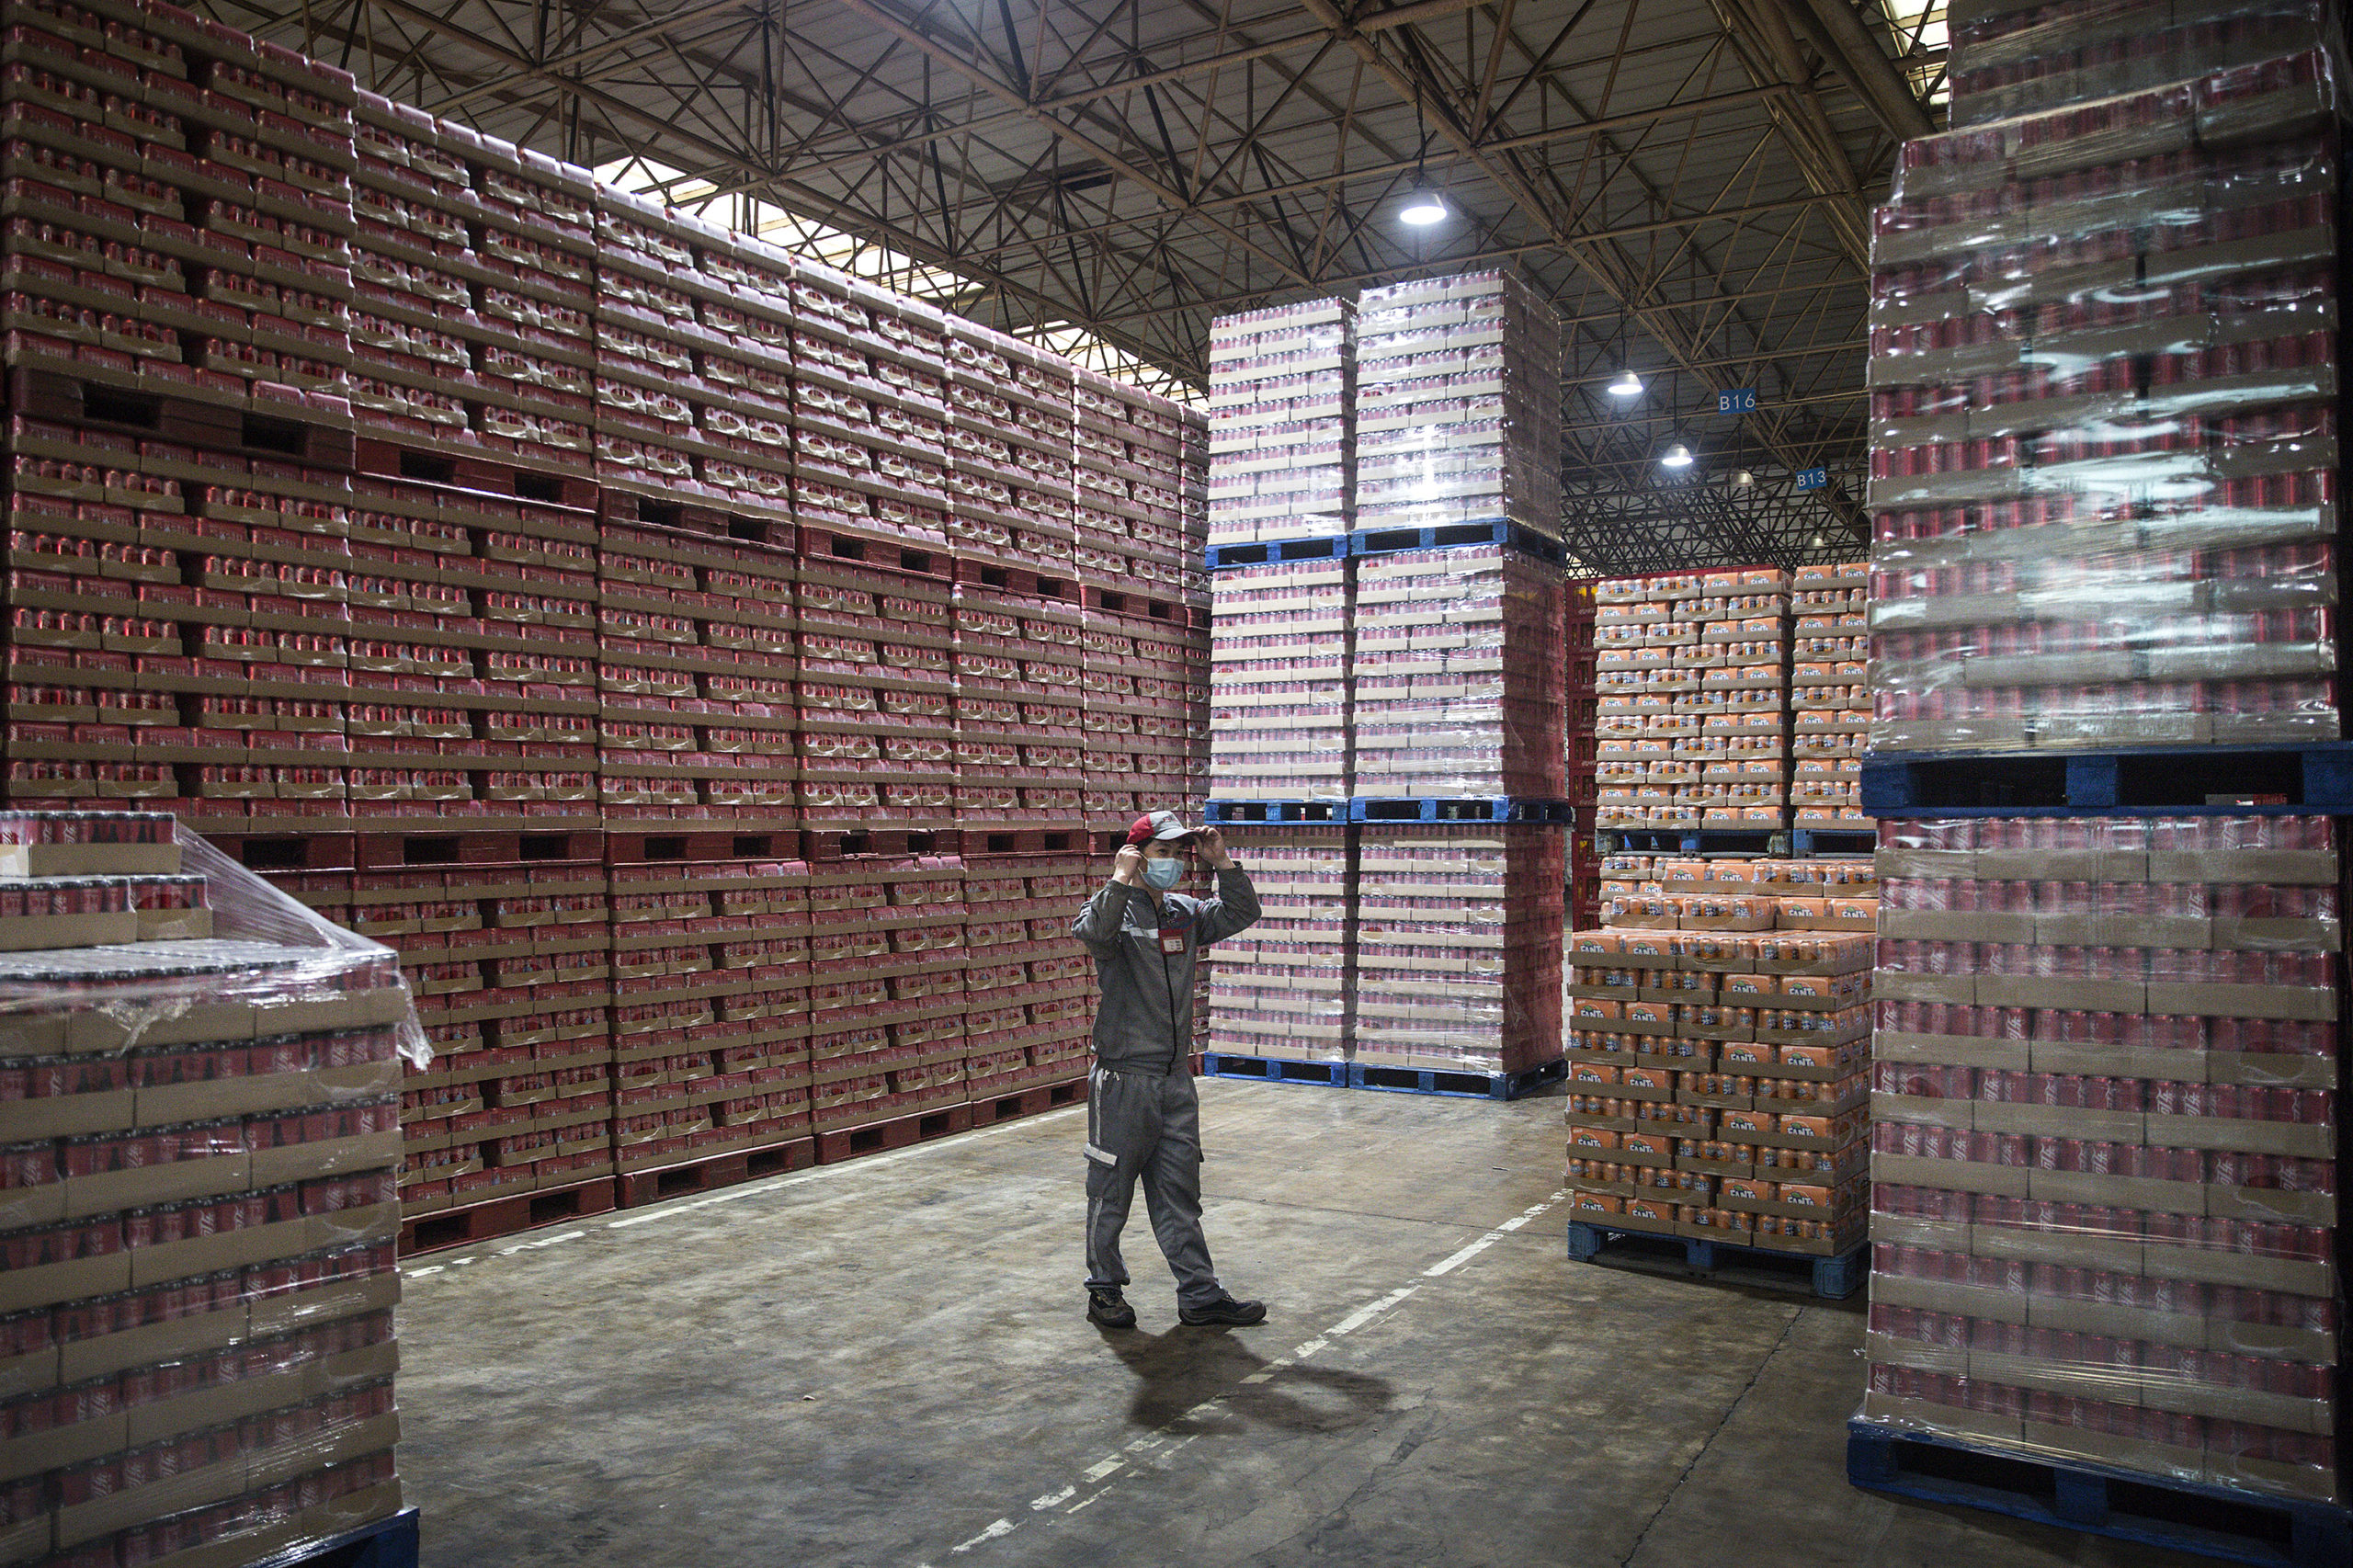 An employee works in the warehouse of the Coca-Cola Beverages factory in 2020 in Wuhan, Hubei province, China. (Getty Images)